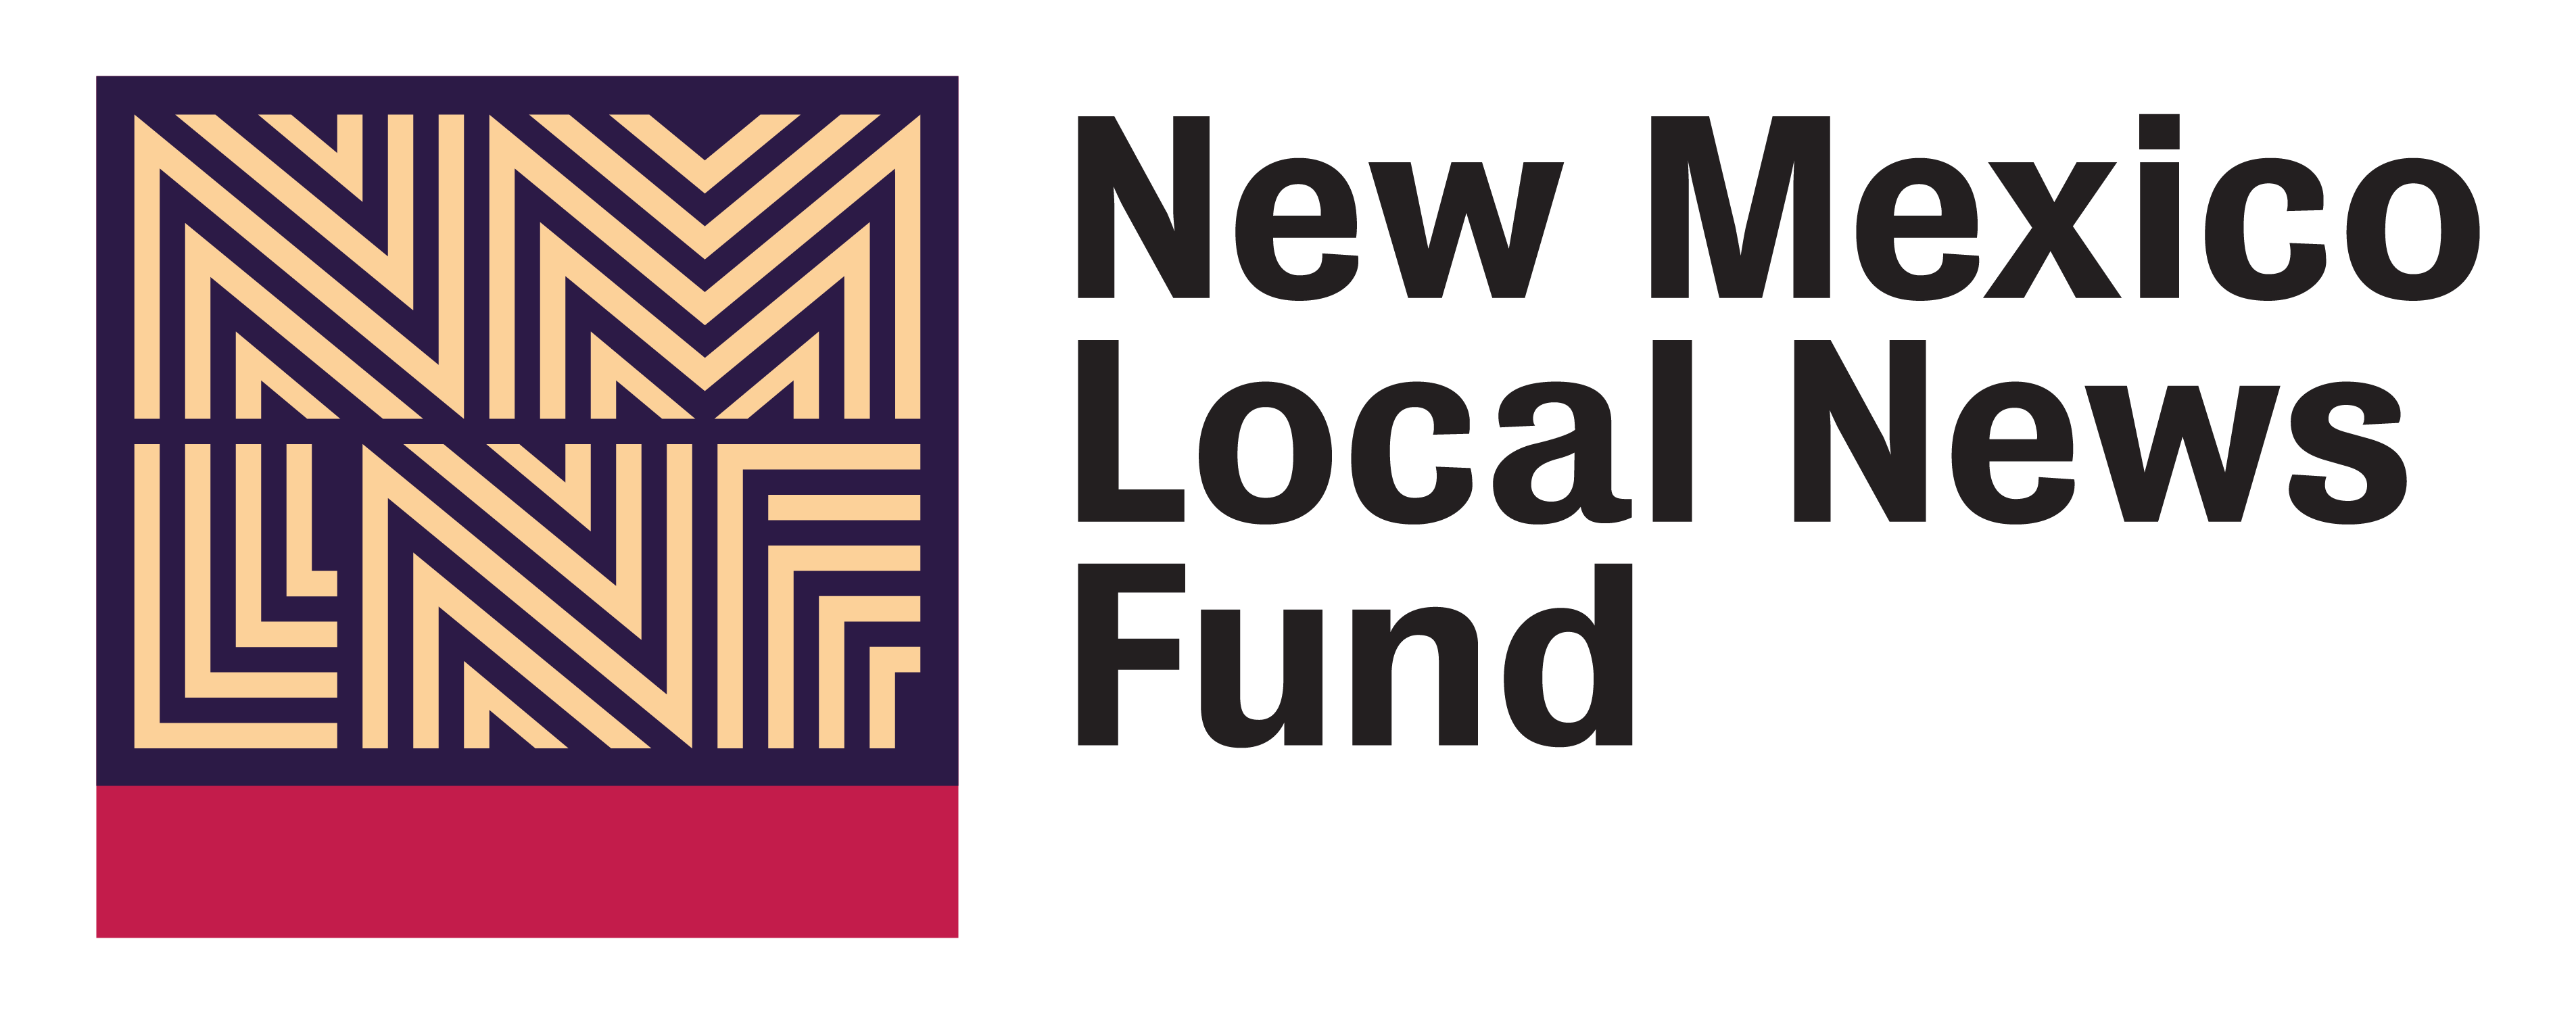 New Mexico Local News Fund